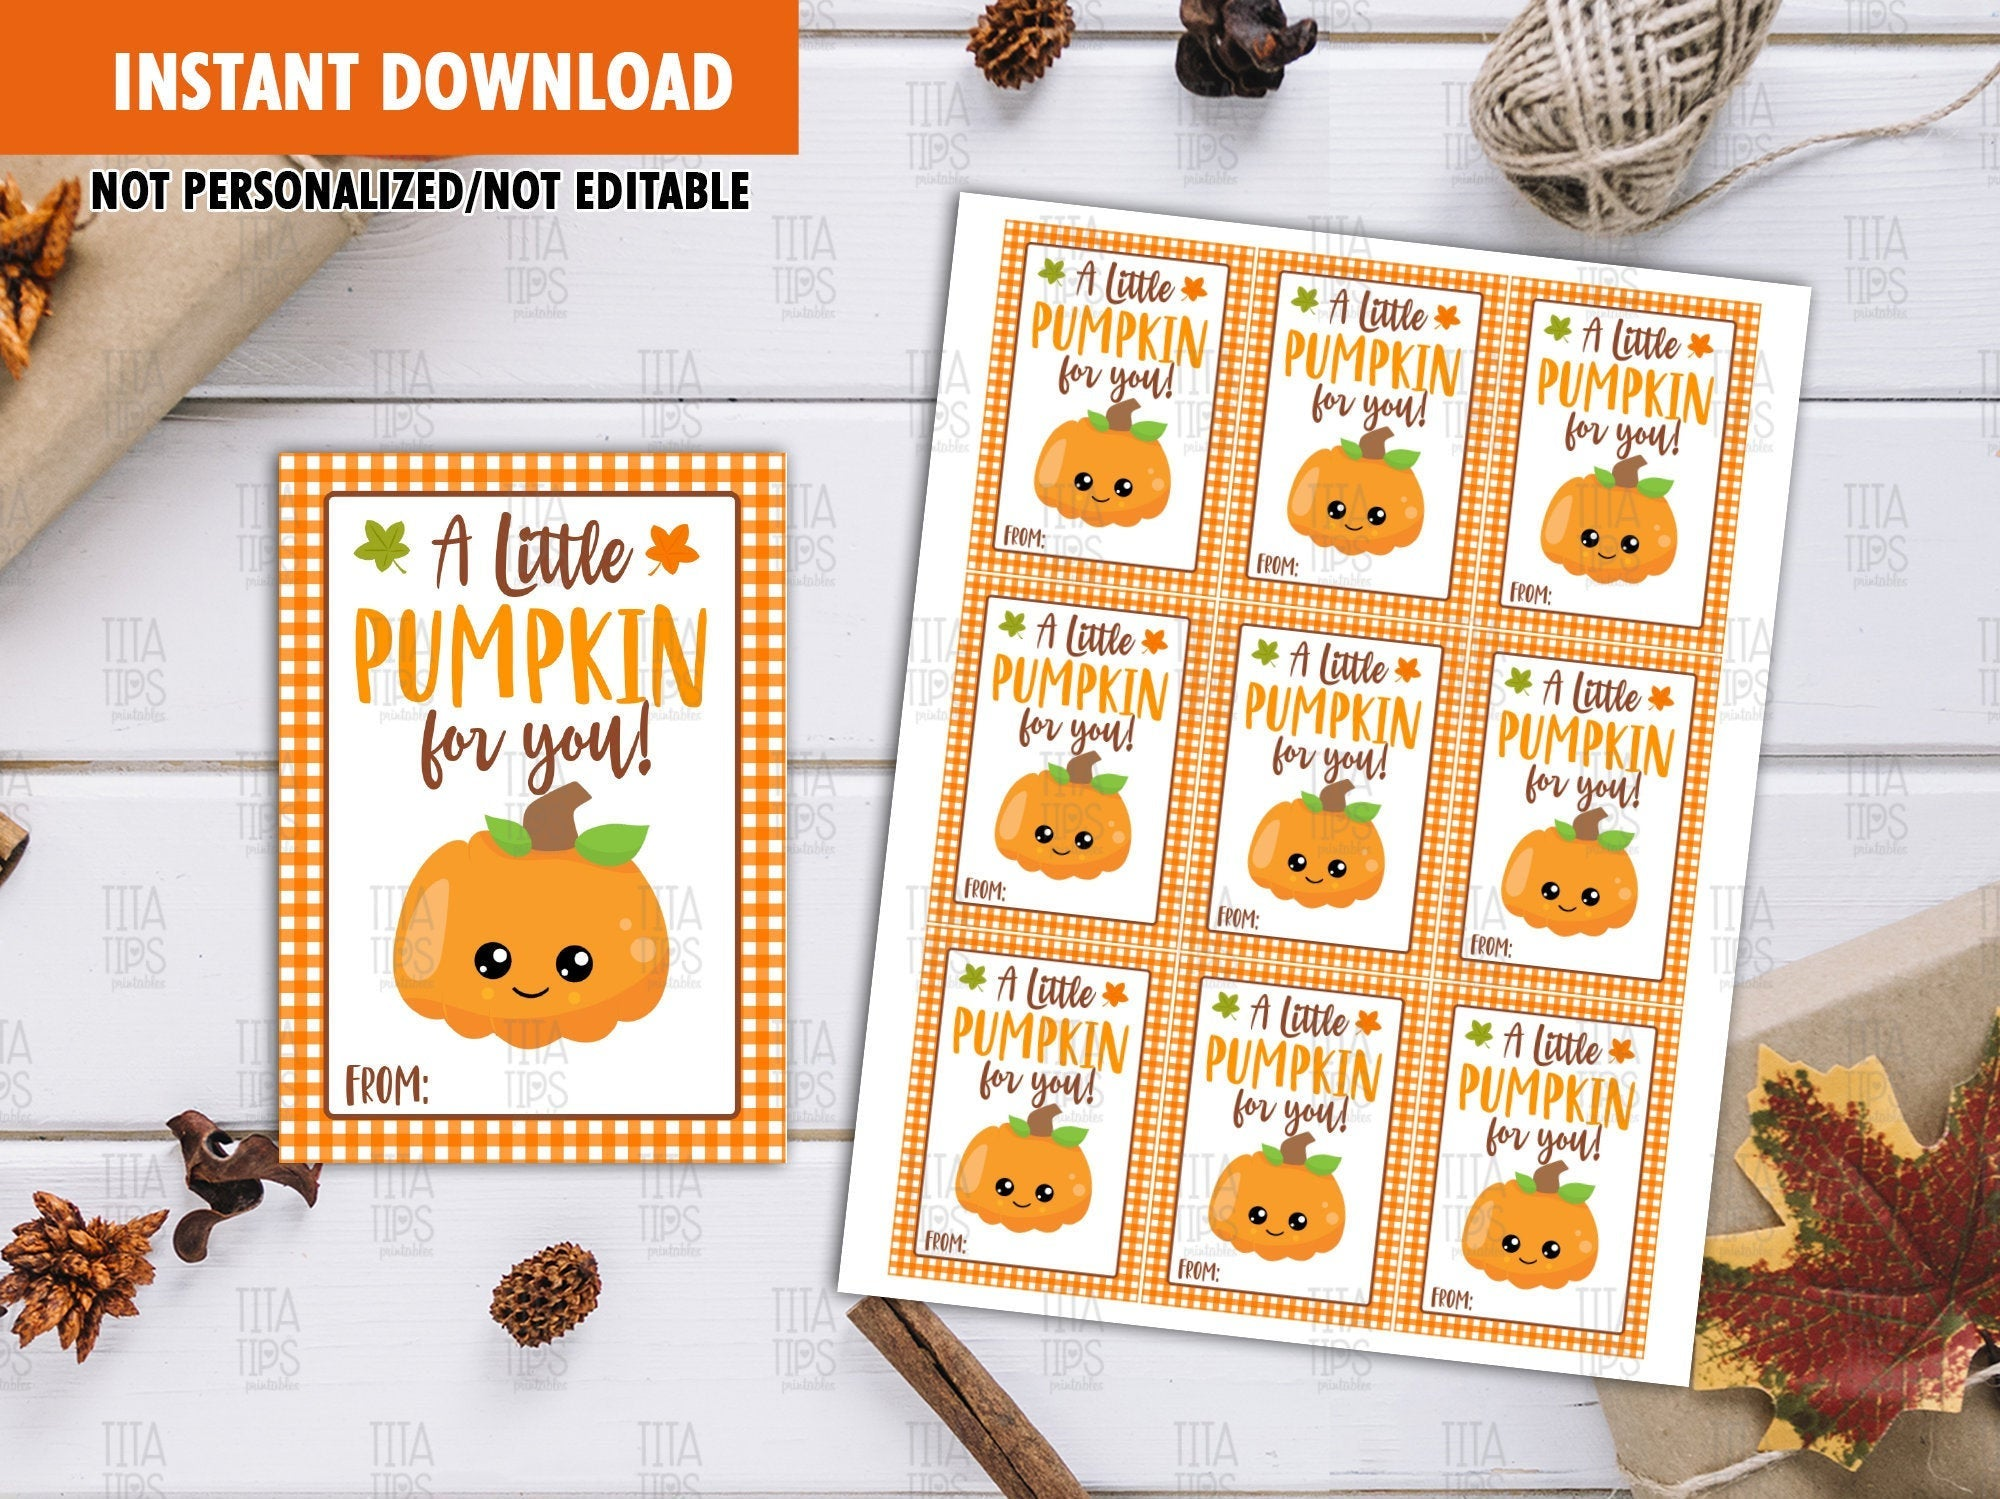 A Little Pumpkin For You Favor Tags, Thanksgiving Printable Card, Instant Download - TitaTipsPrintables